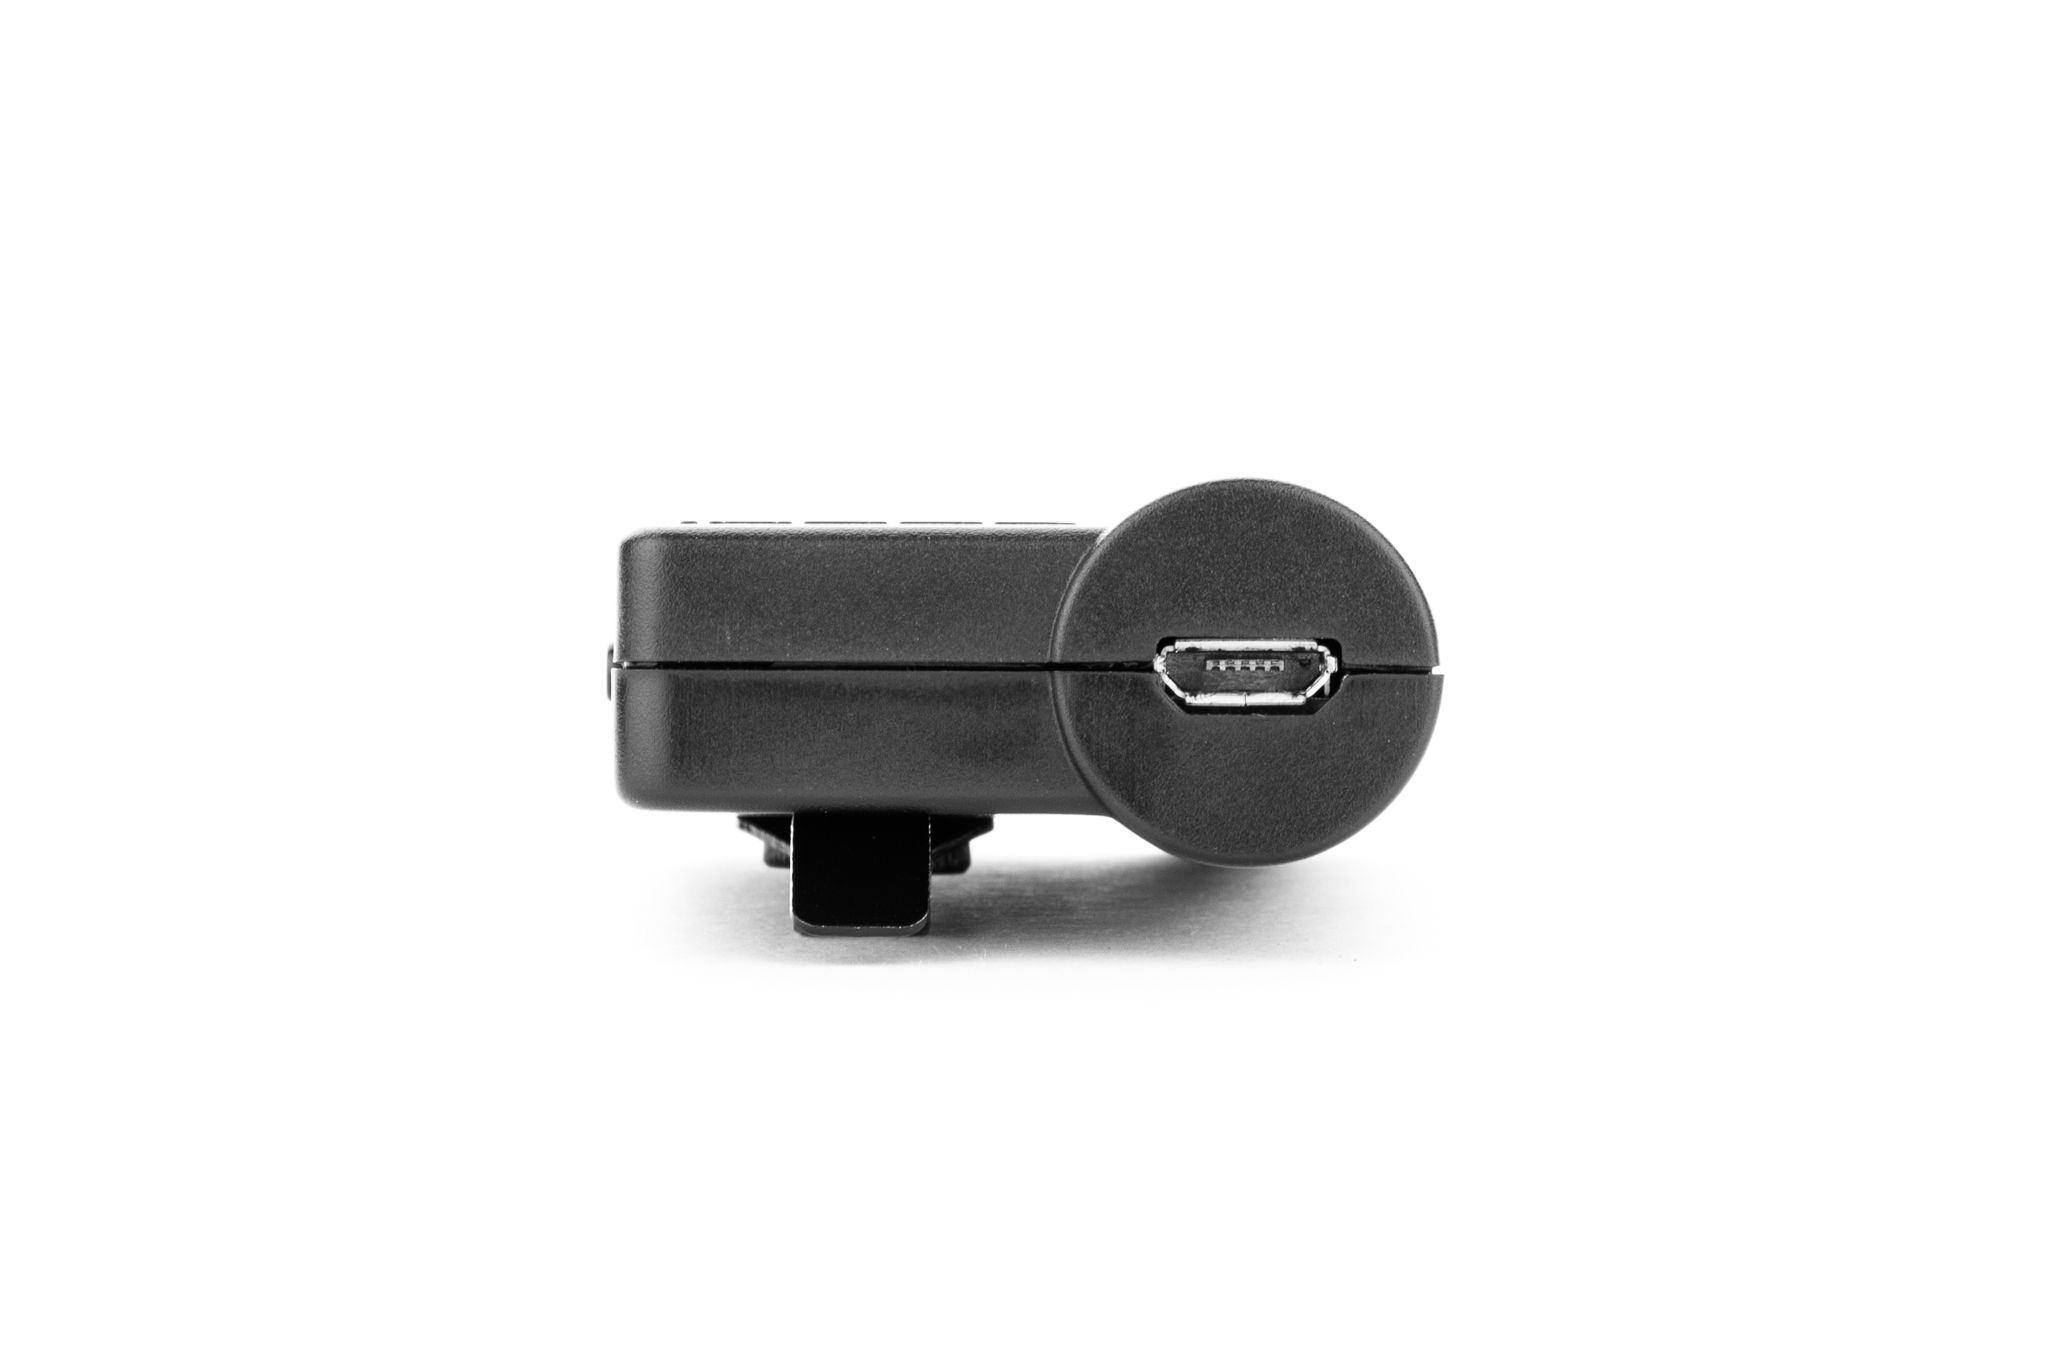 EAR3 - Micro USB Input/Charge Port